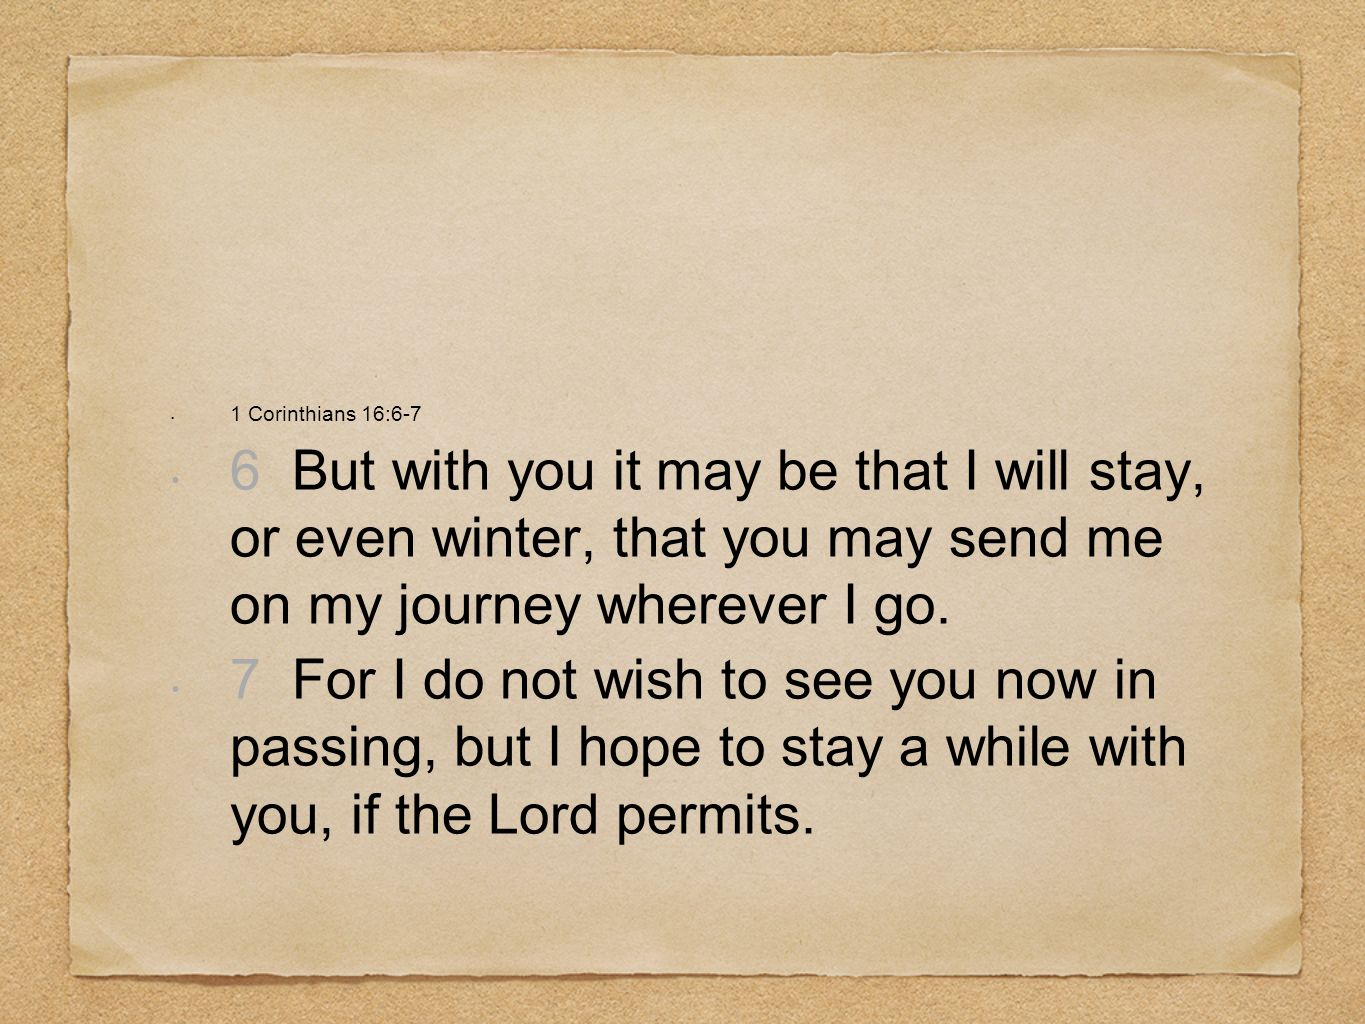 1 Corinthians 16:6-76 But with you it may be that I will stay, or even winter, that you may send me on my journey wherever I go.